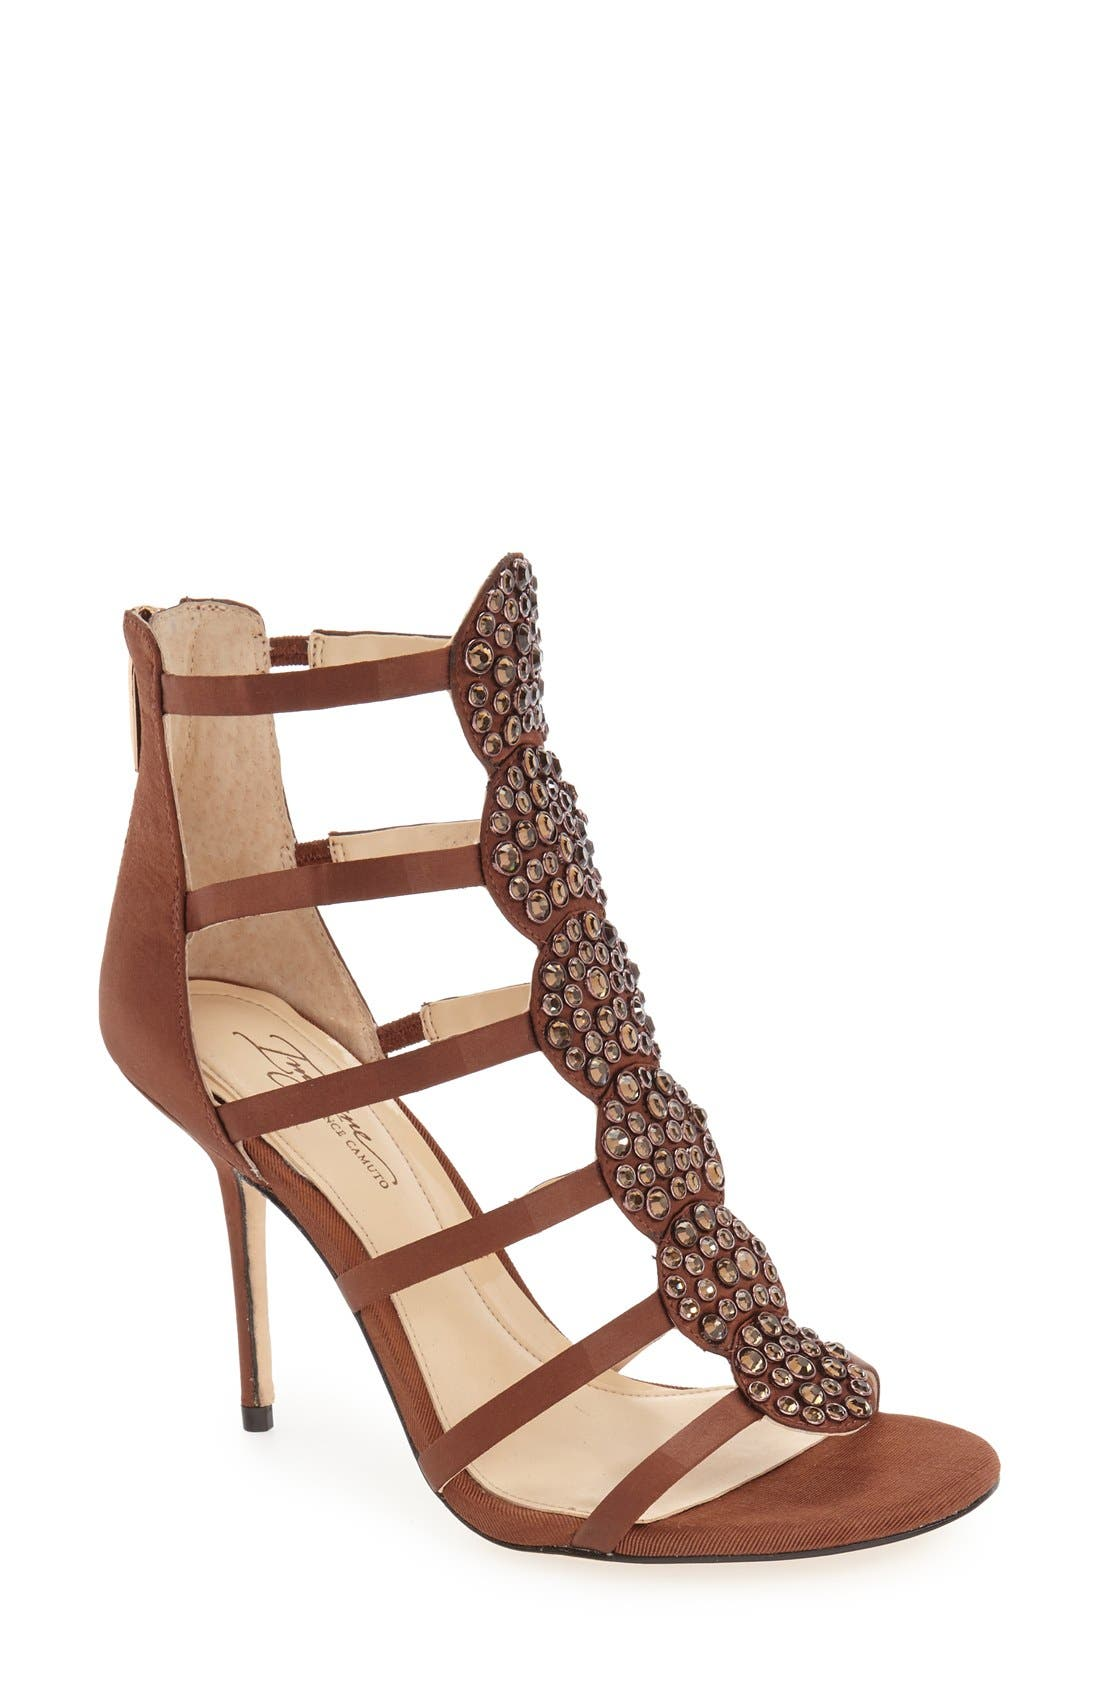 IMAGINE BY VINCE CAMUTO 'Reya' Crystal Sandal